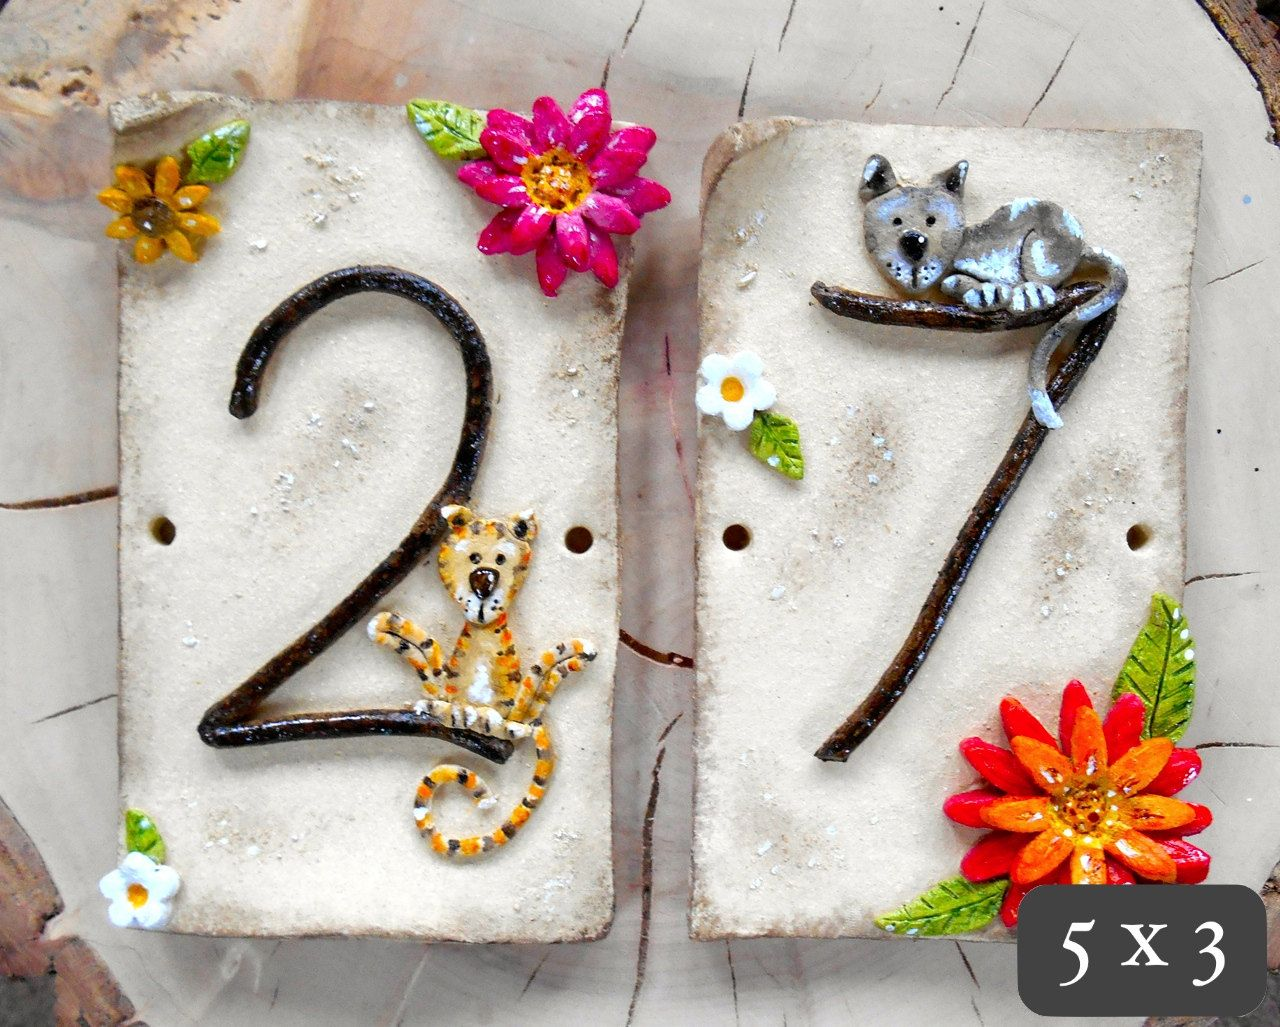 House number address tiles ceramic custom by bluefishstudiosshop house number address tiles ceramic custom by bluefishstudiosshop 2300 dailygadgetfo Image collections